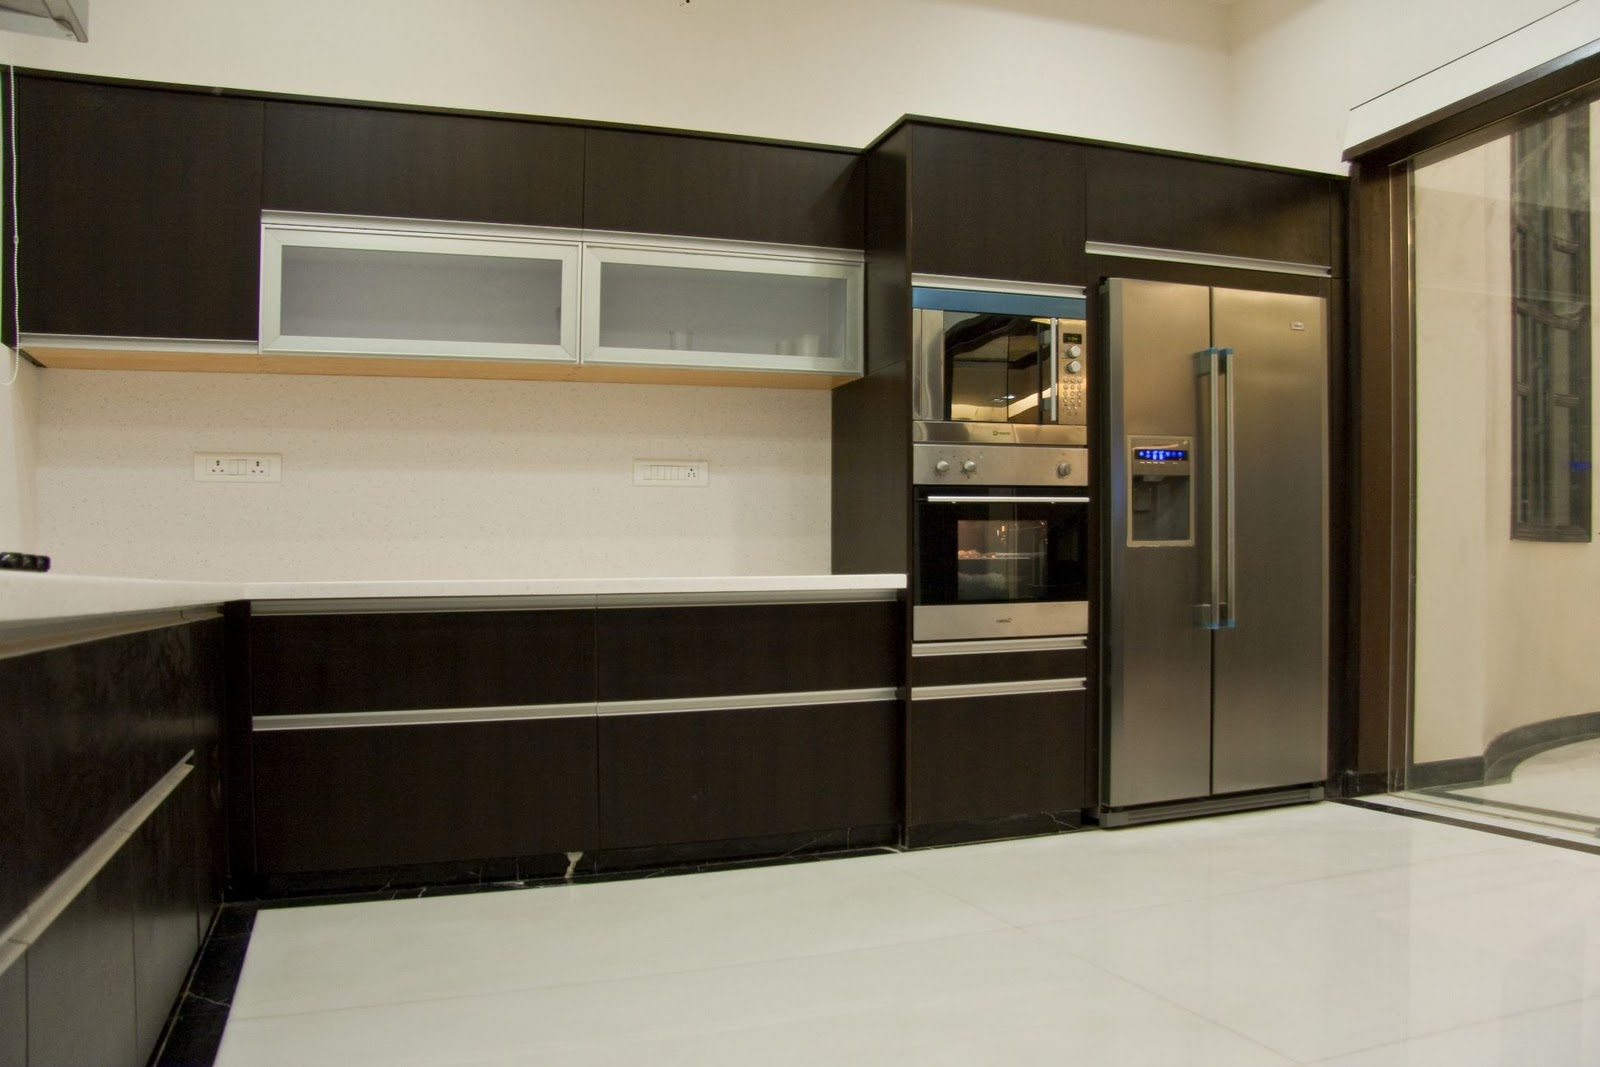 A House Of Kitchen amp Interior